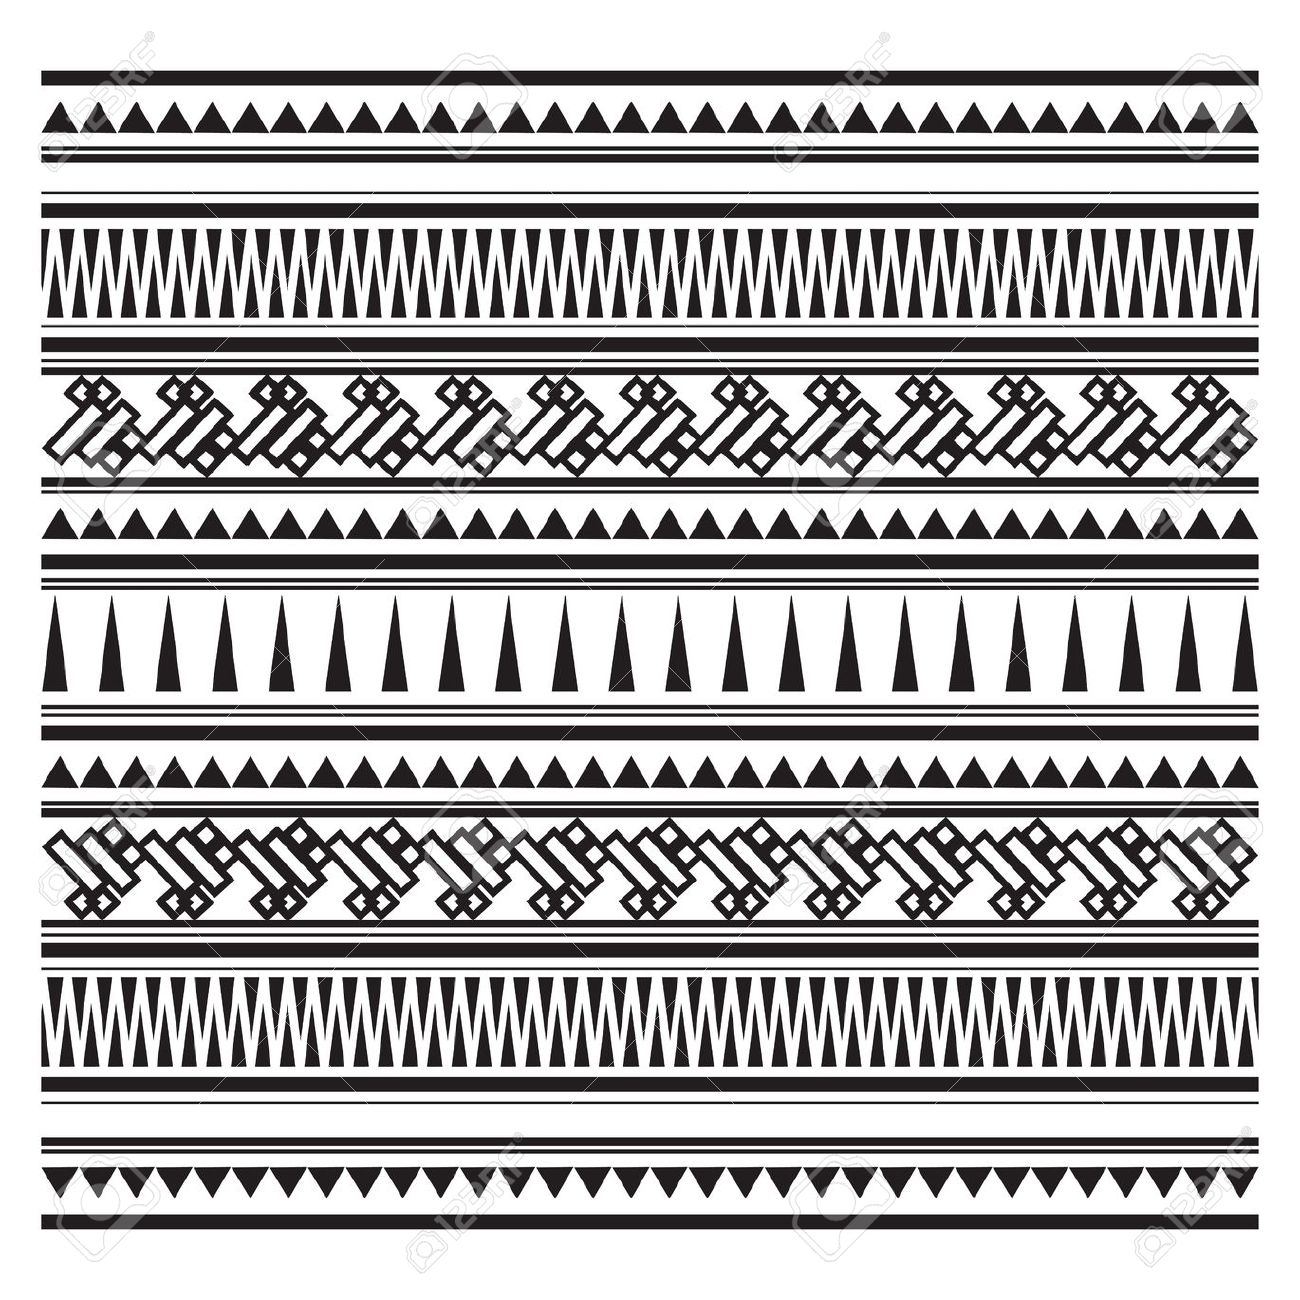 27 Best Aztec Patterns Wallpapers